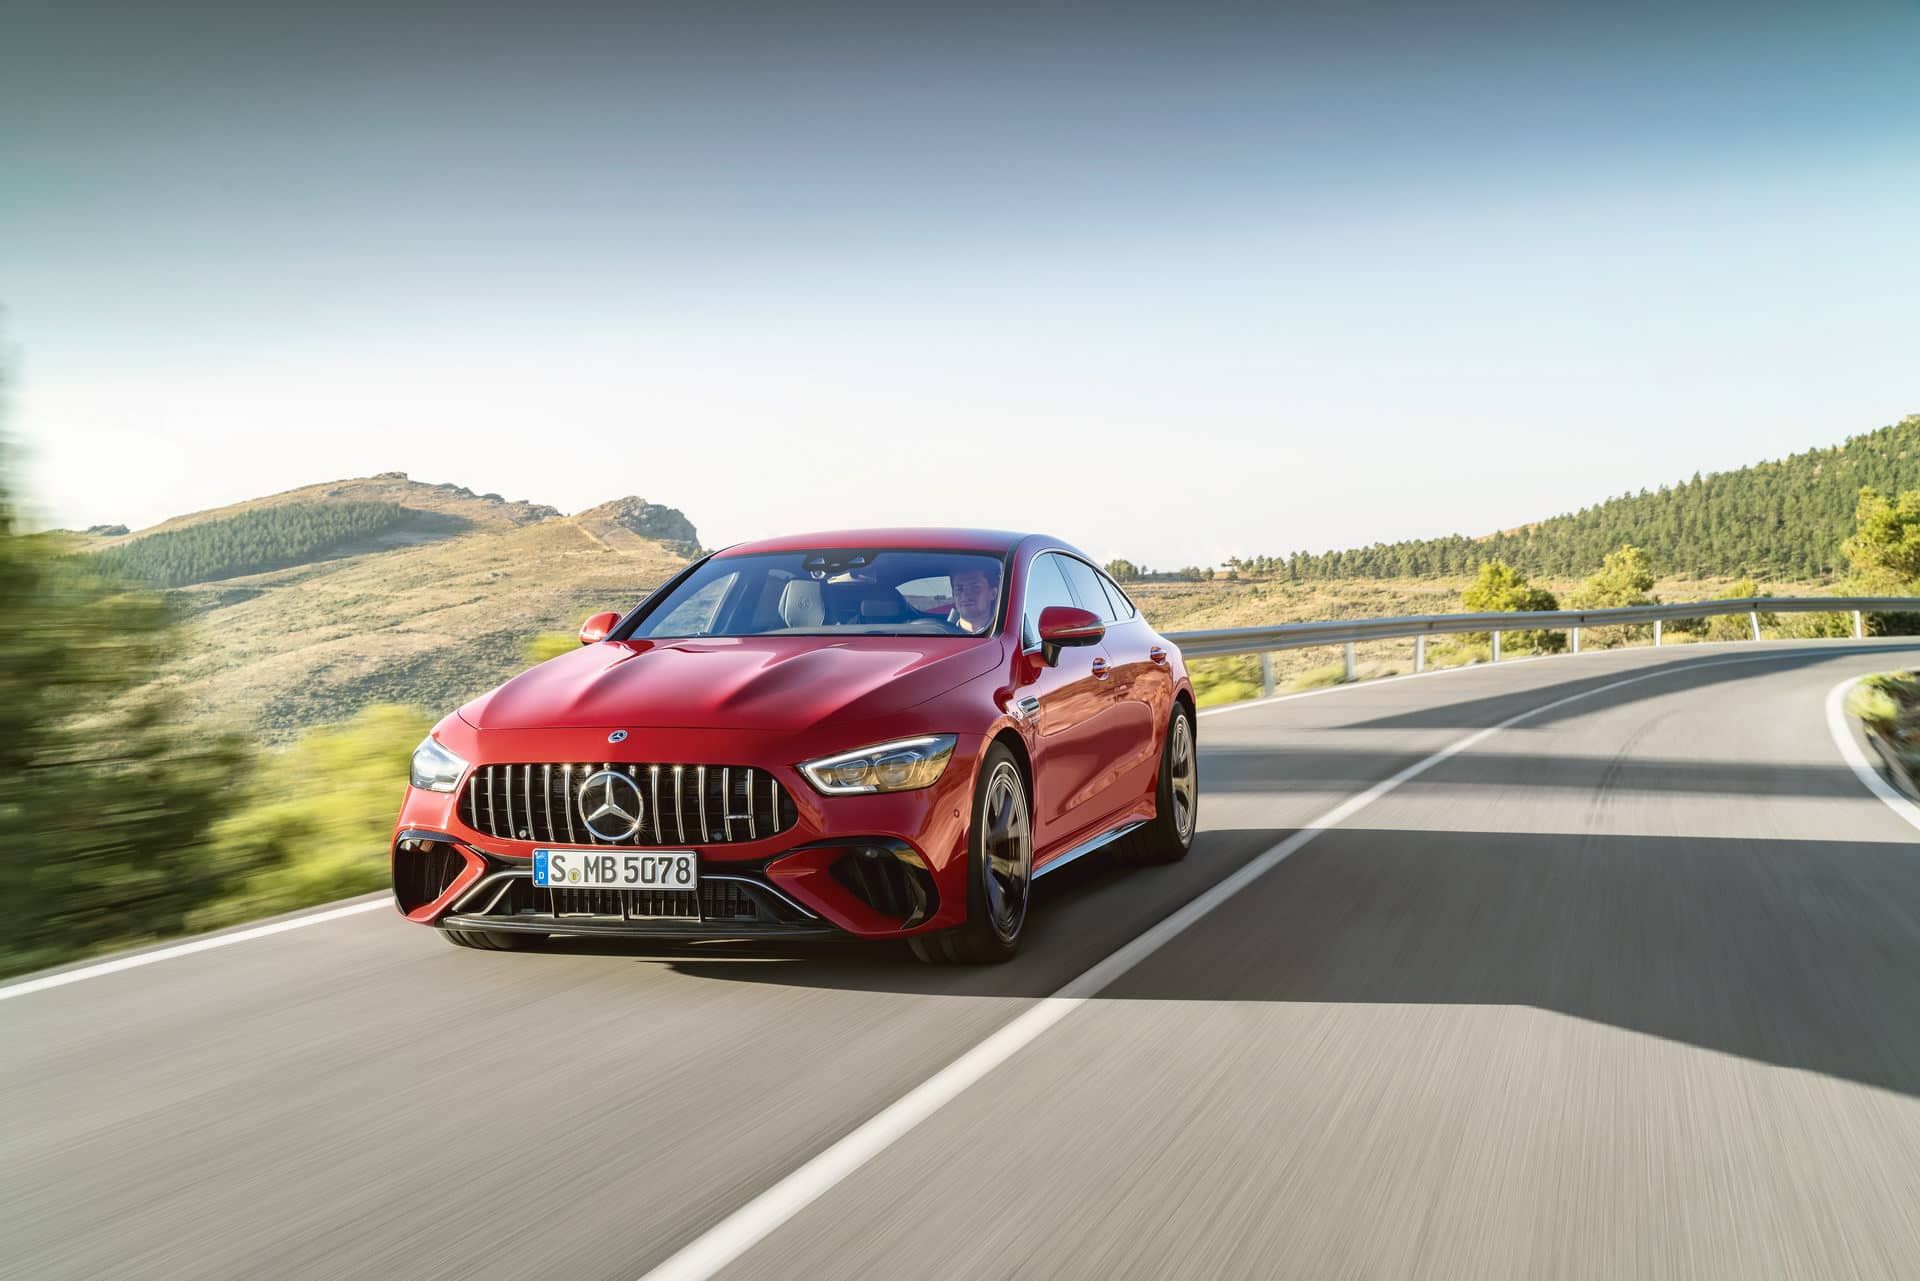 mercedes-amg gt 63 s eperformance (10)